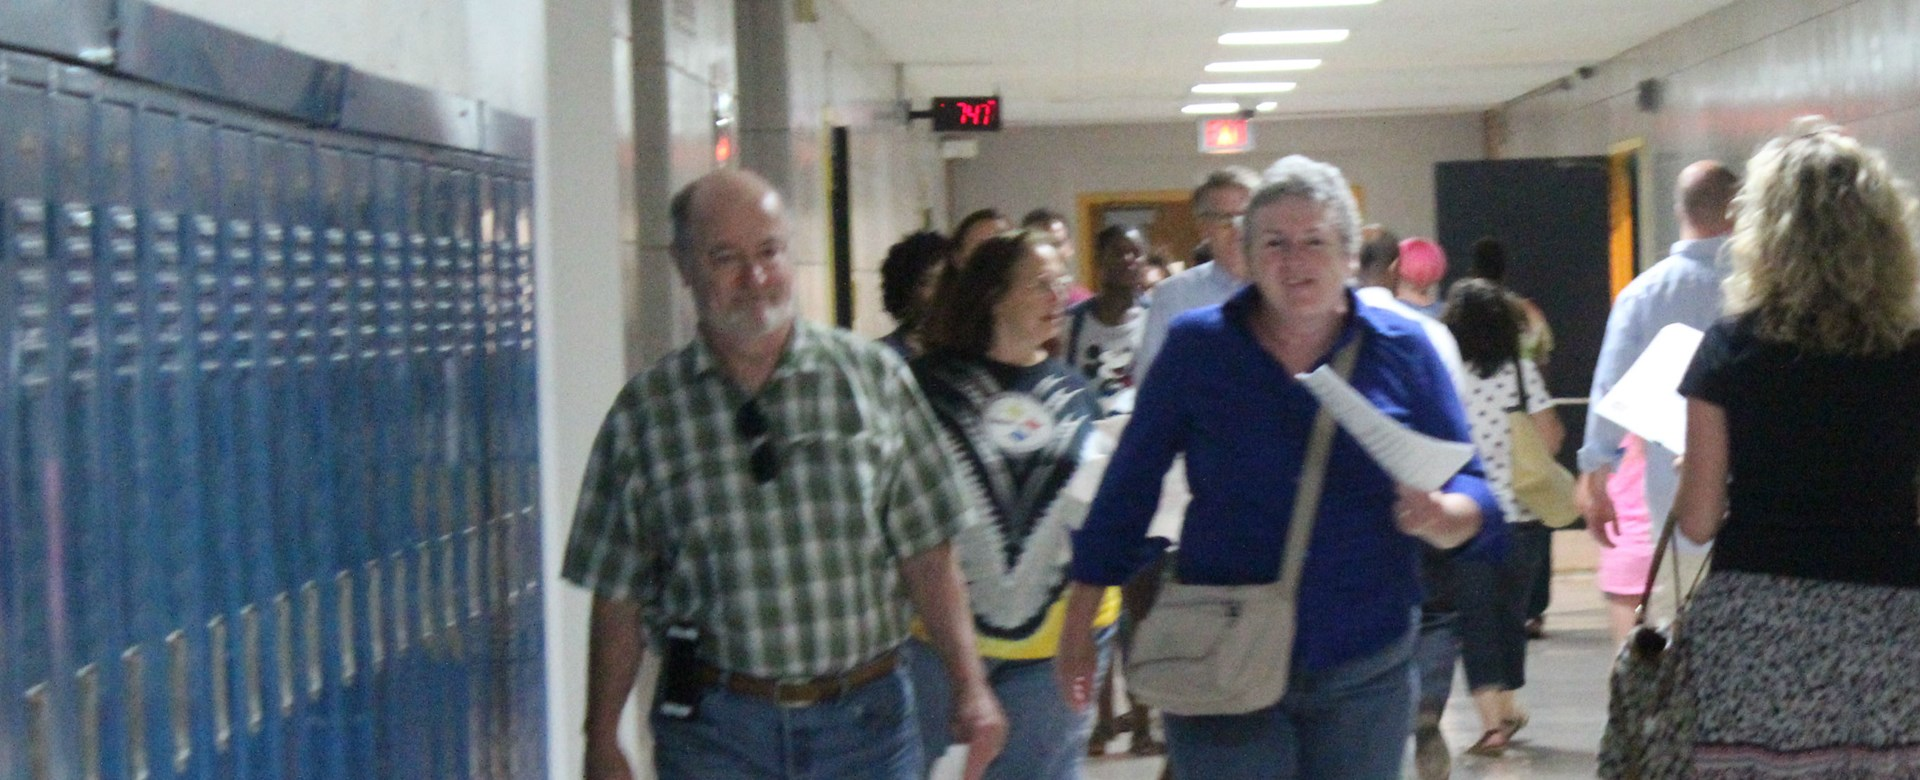 Parents head to class.